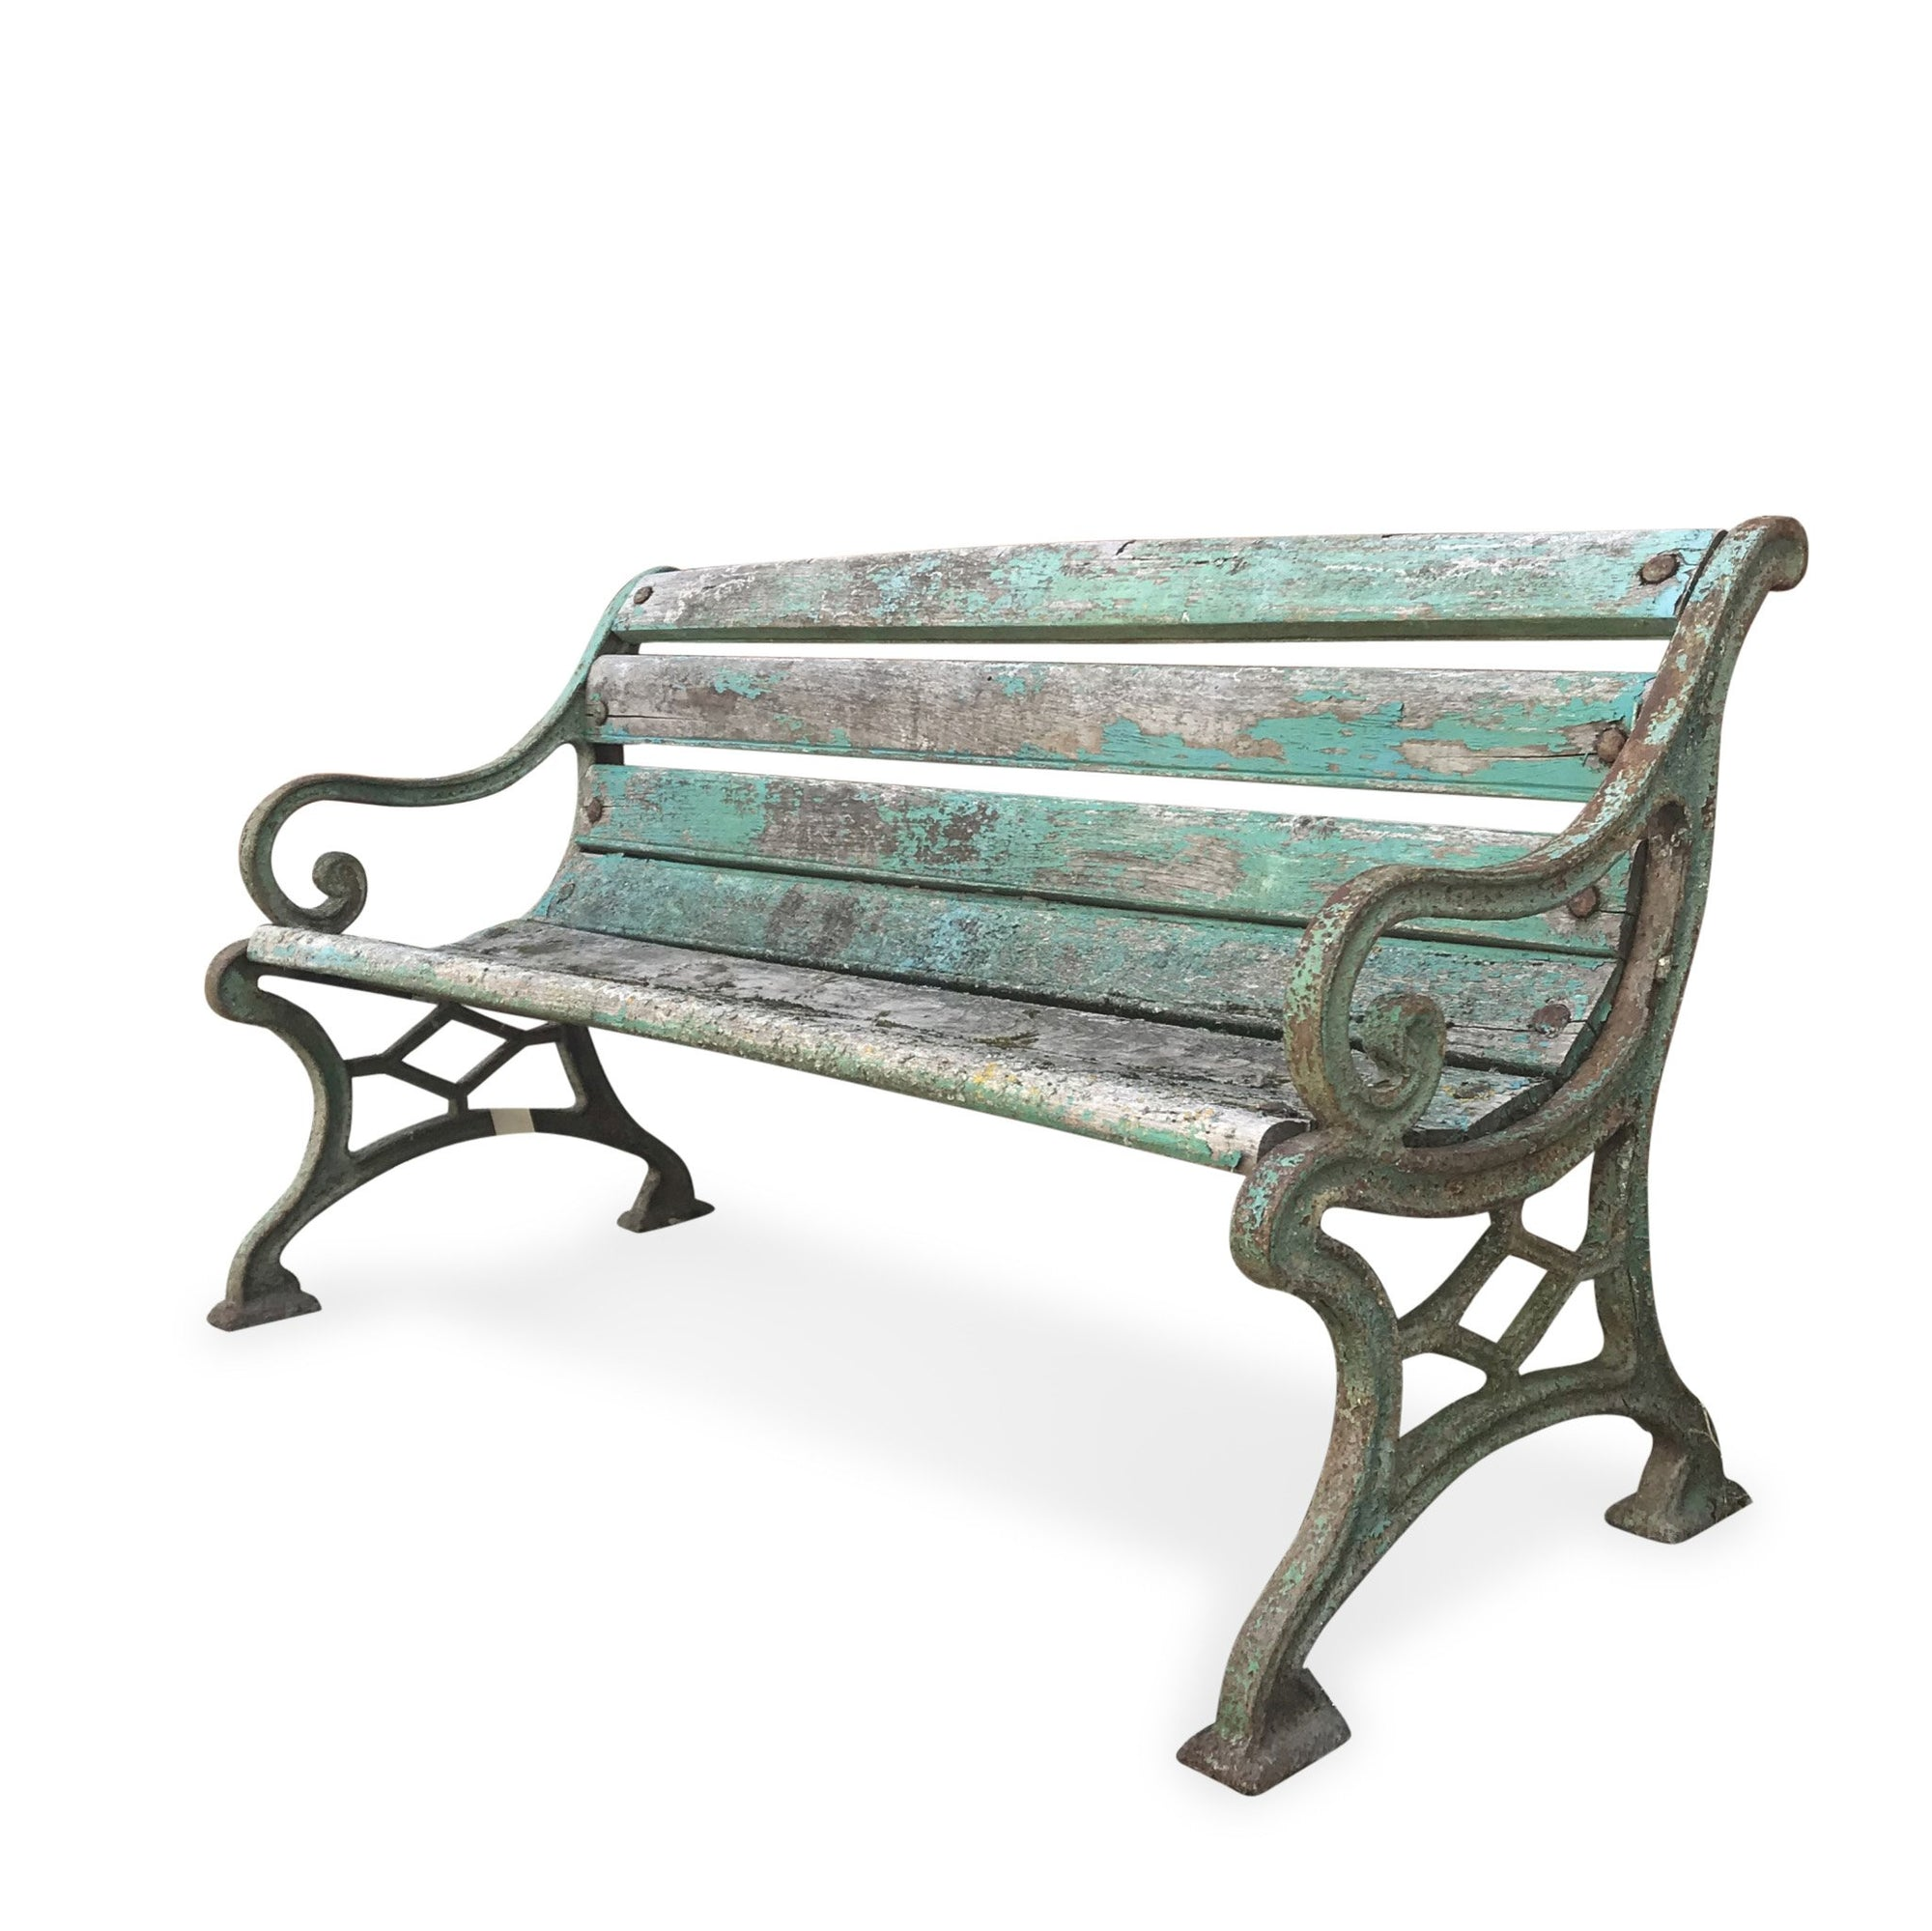 Vintage Green Painted Old Indian Cast Iron Bench from 1920's | INDIGO ANTIQUES